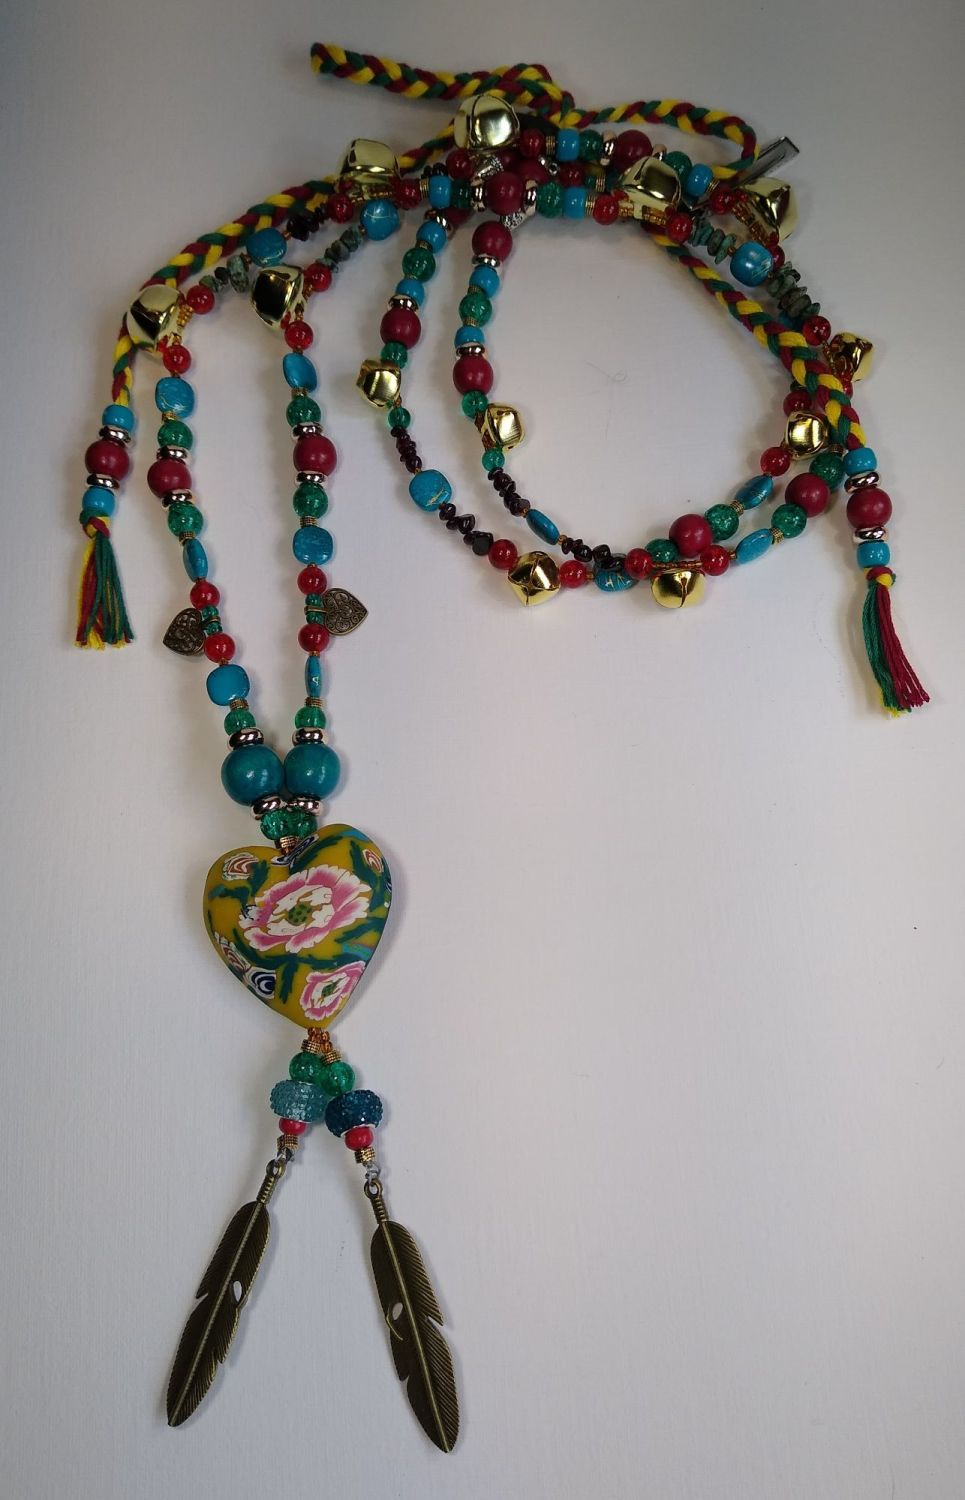 Rhythm Beads - Love and Luck. Pony to Full Size.